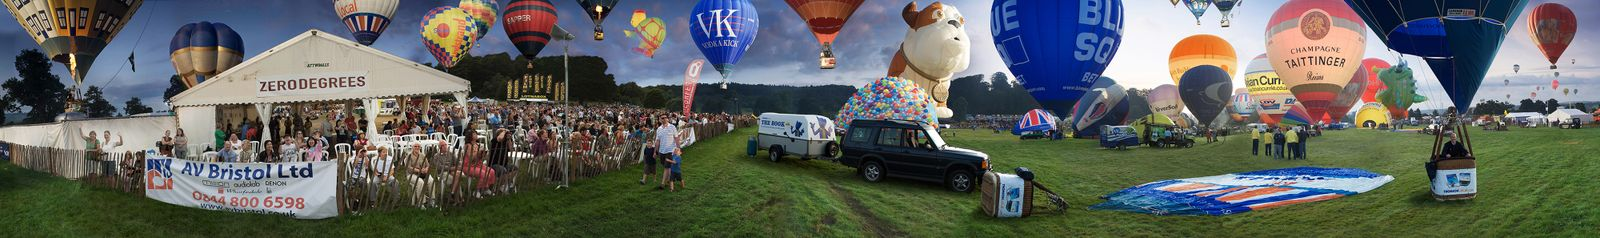 The Bristol Balloon Fiesta / Dead Air